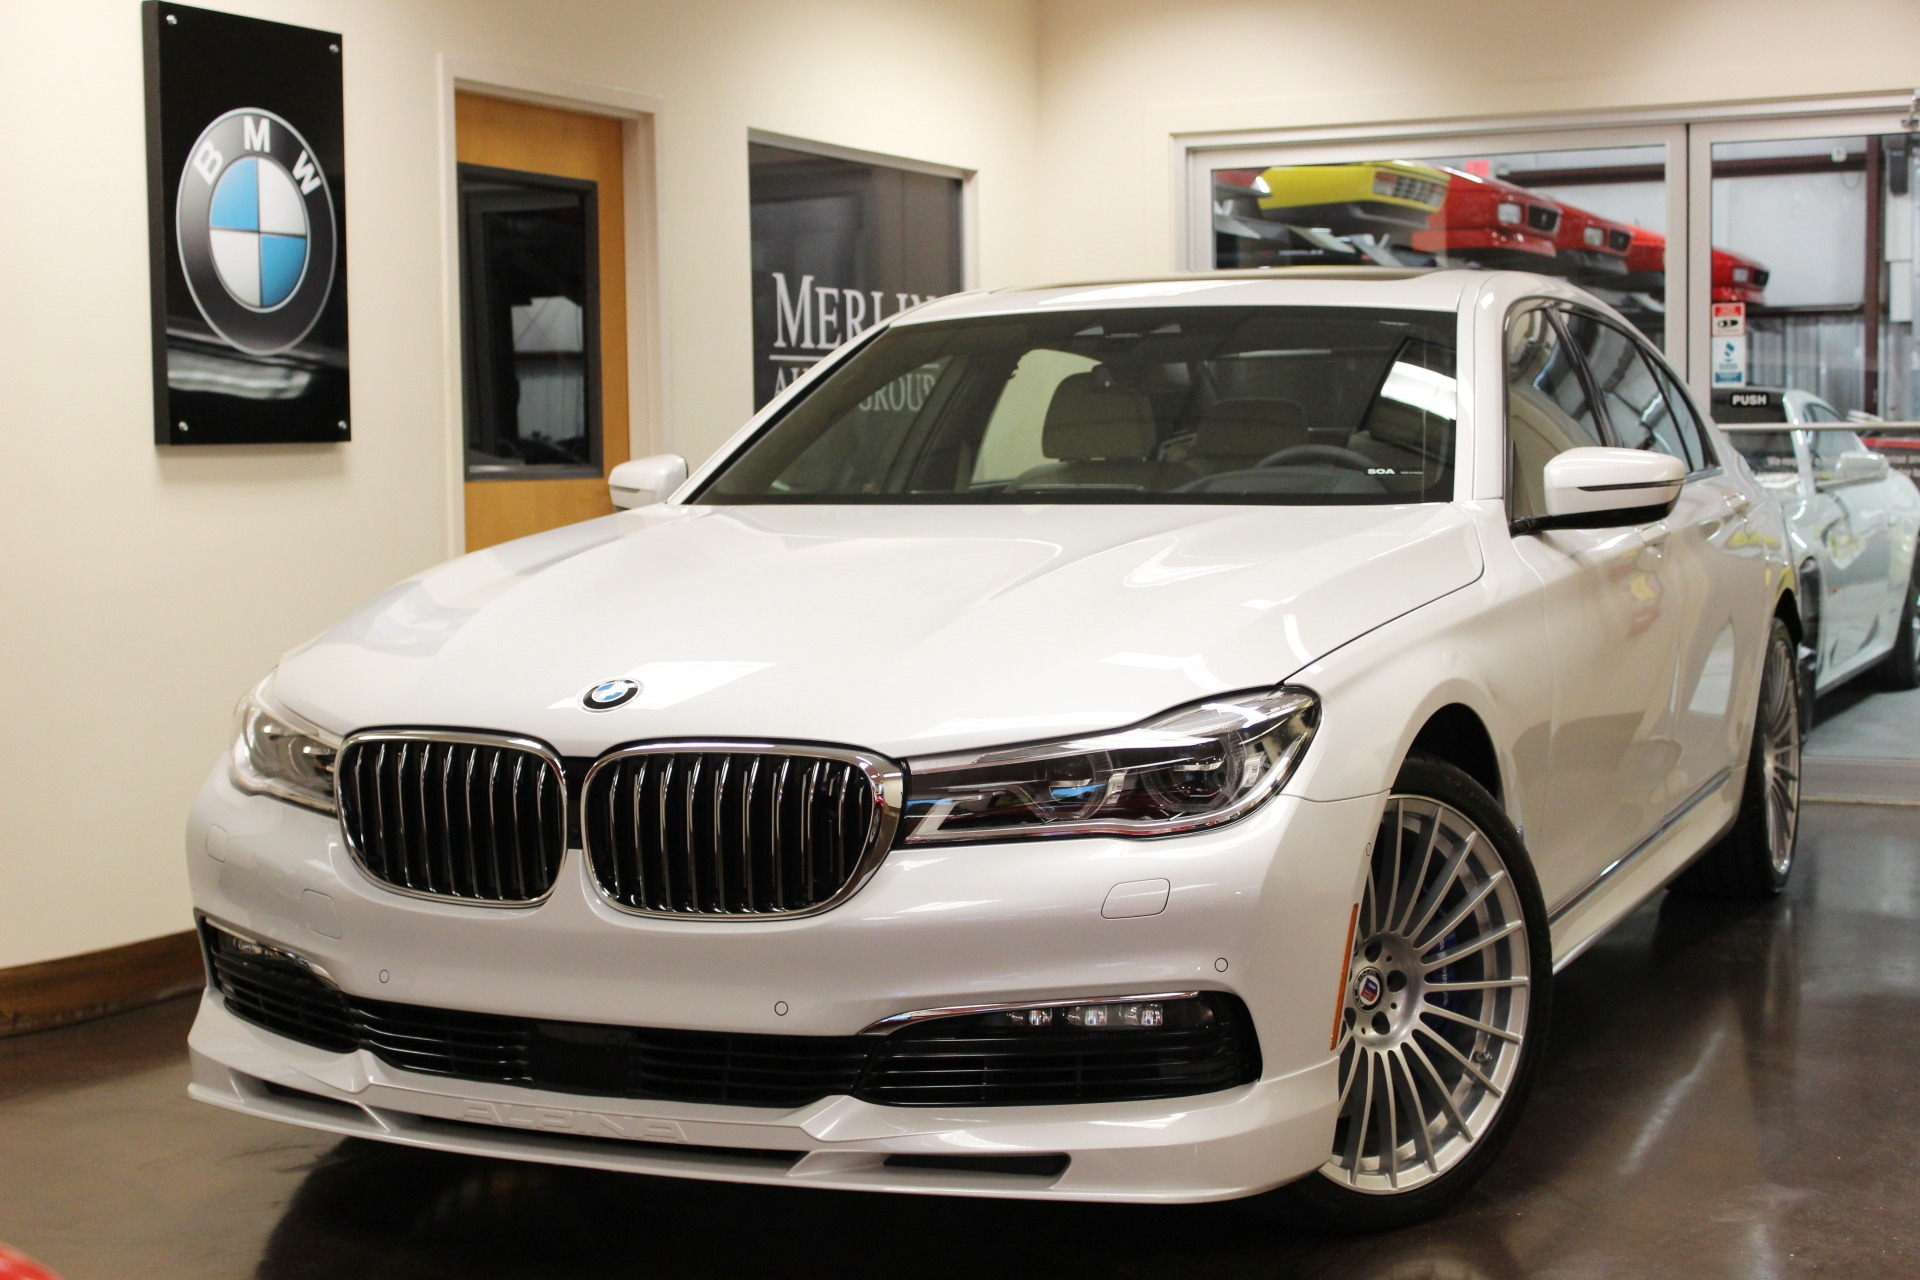 used 2018 bmw alpina b7 stock p4157c ultra luxury car from merlin auto group. Black Bedroom Furniture Sets. Home Design Ideas